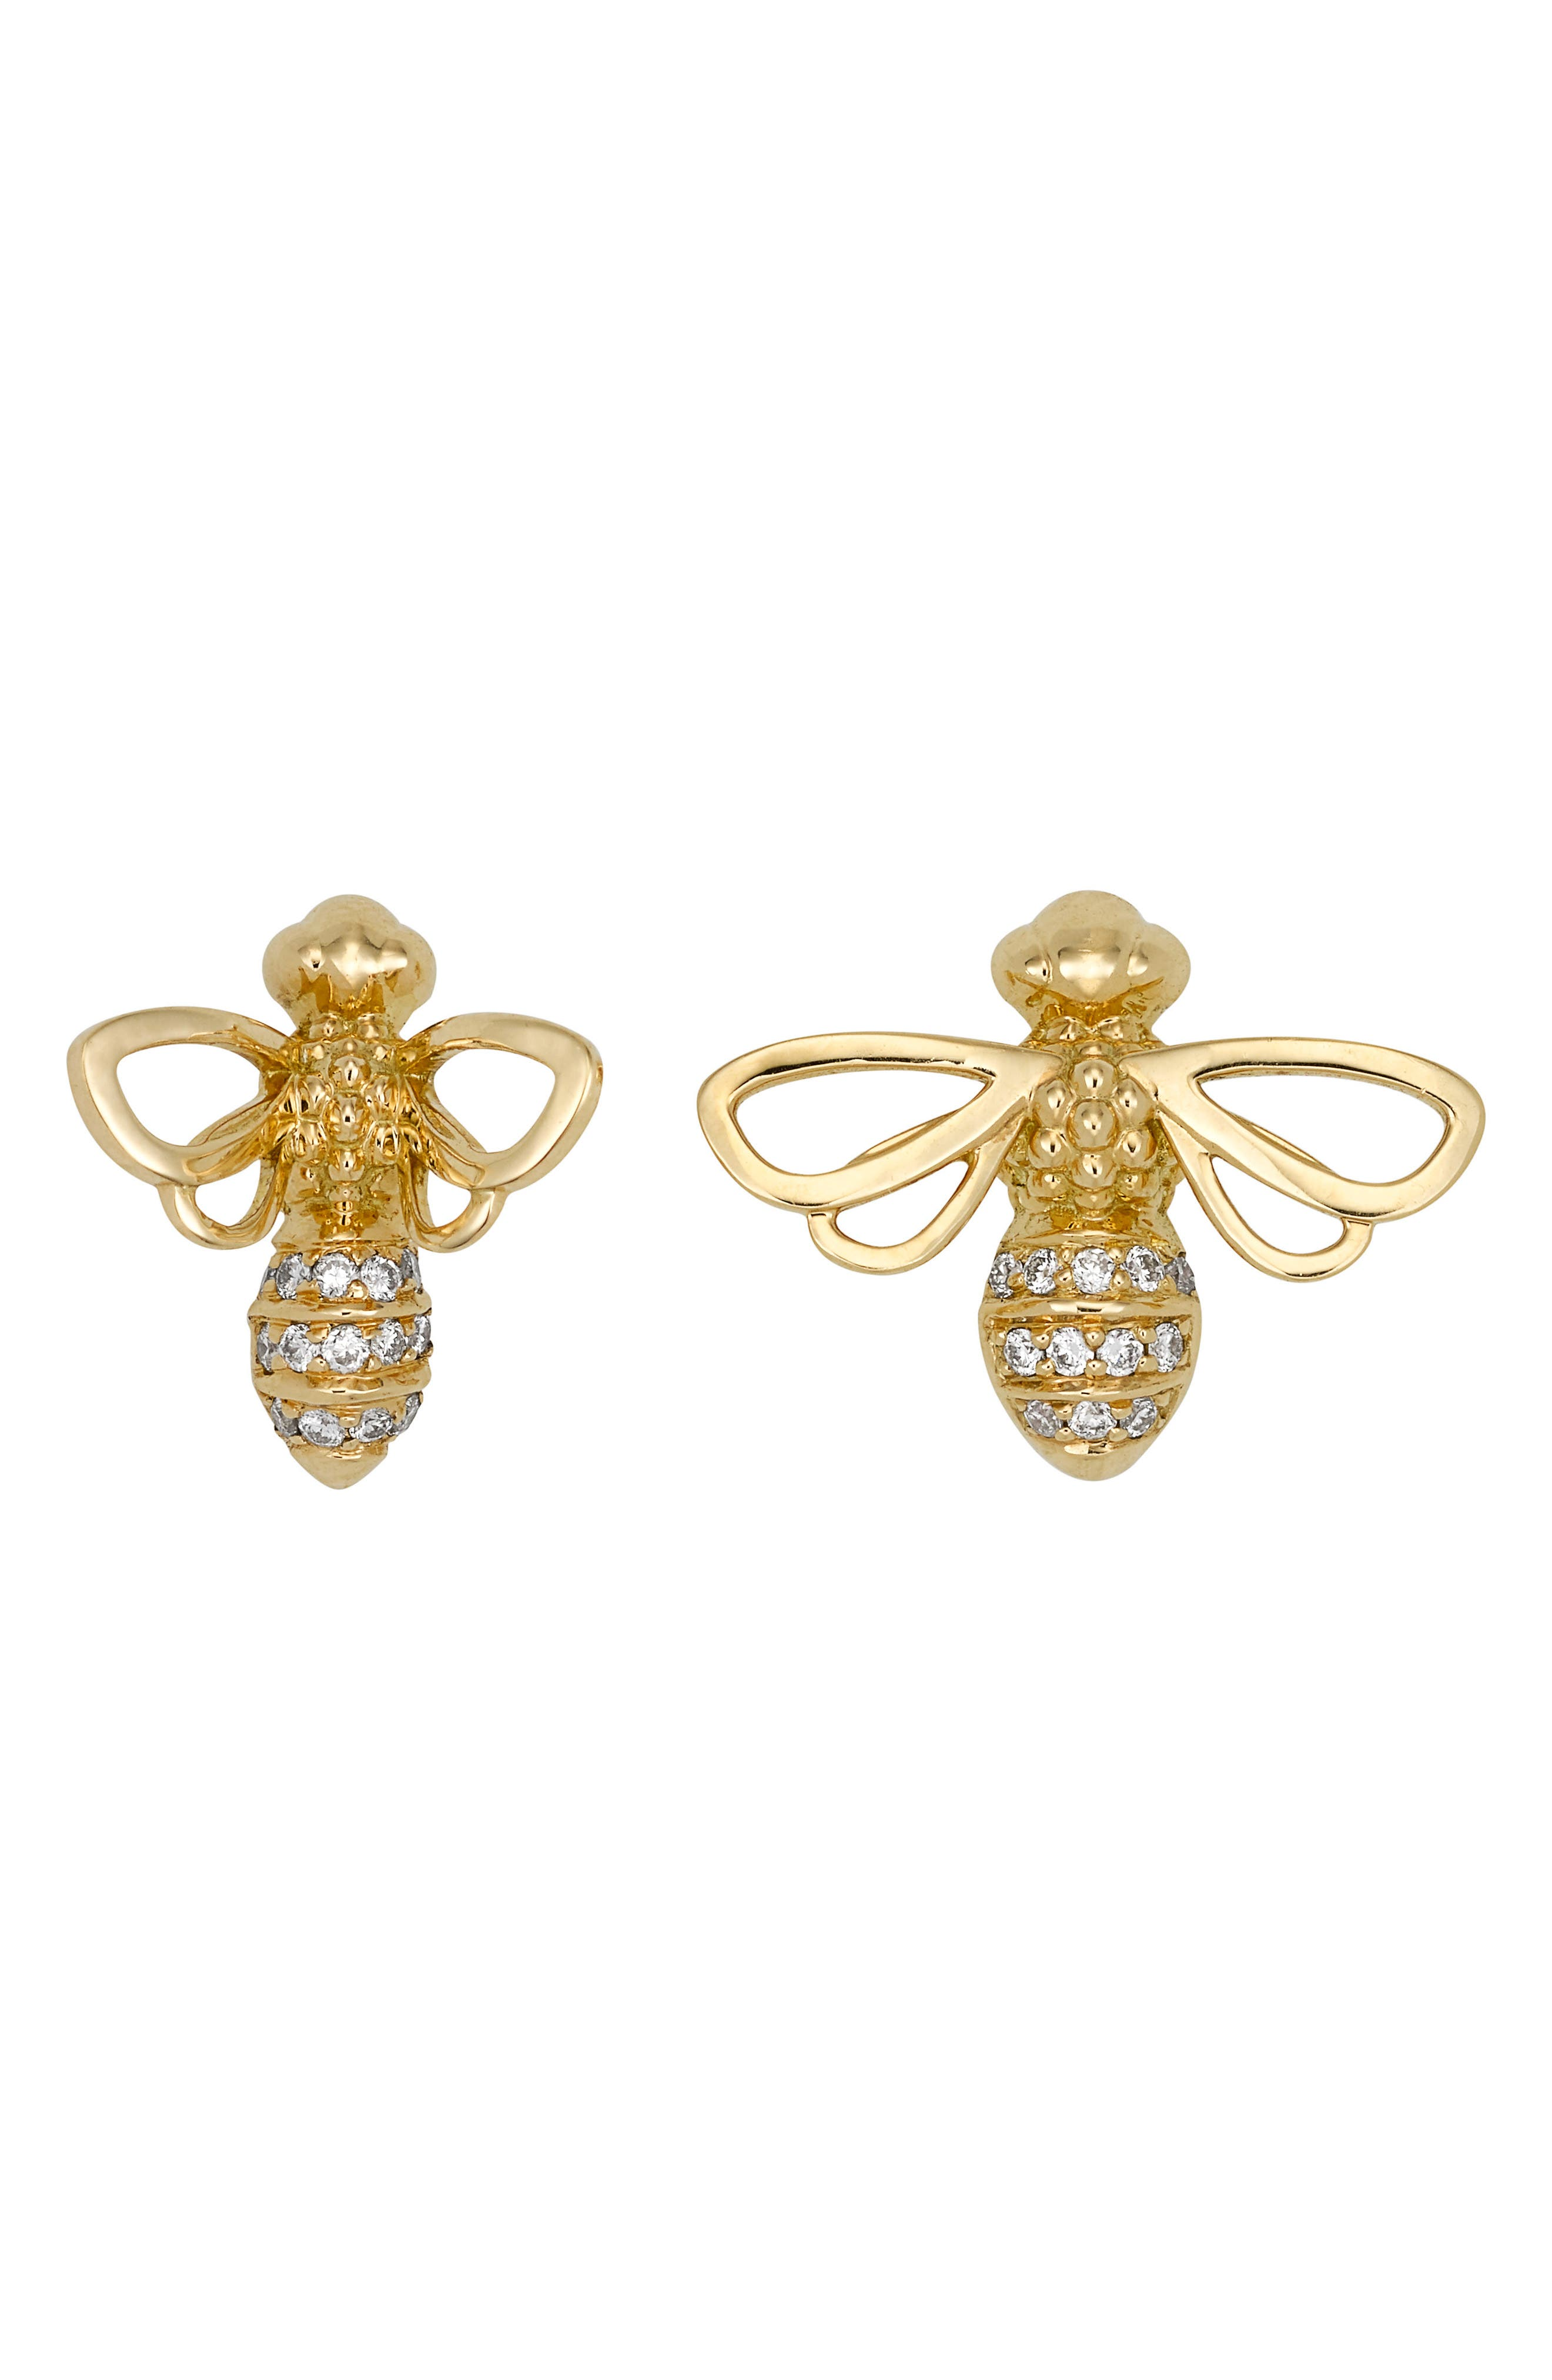 TEMPLE ST CLAIR 18K Gold & Diamond Bee Stud Earrings